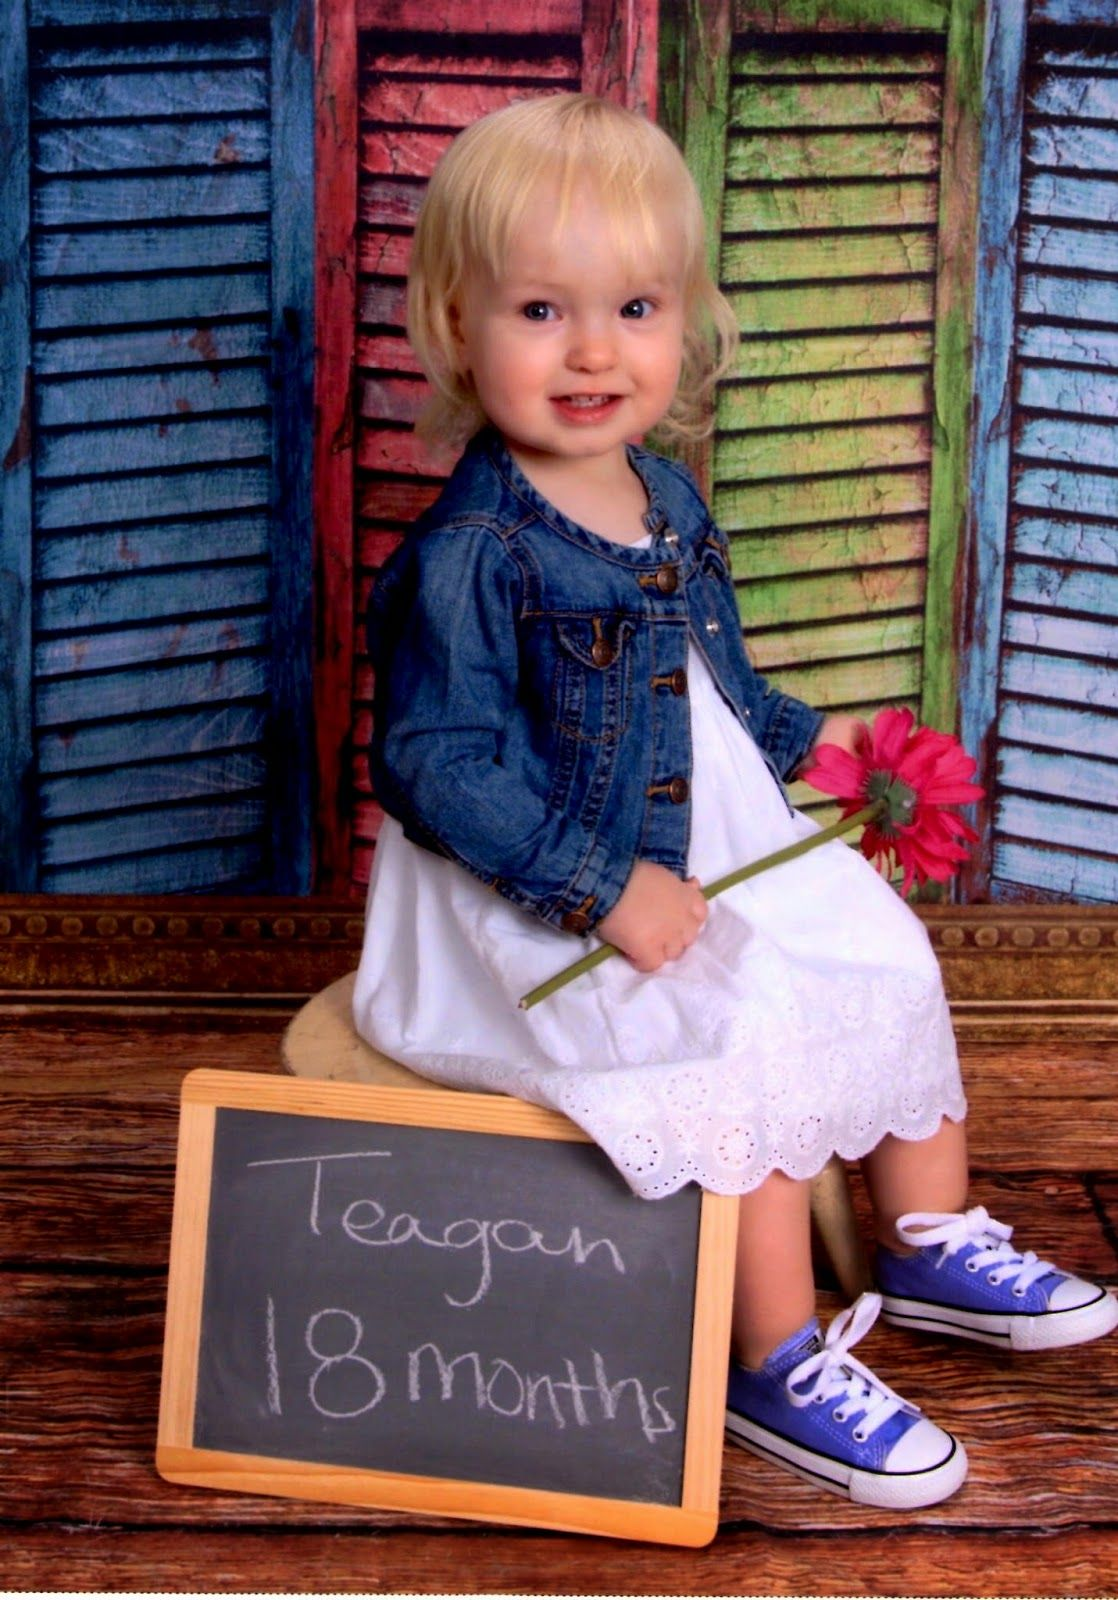 Teagan S 18 Month Professional Pictures